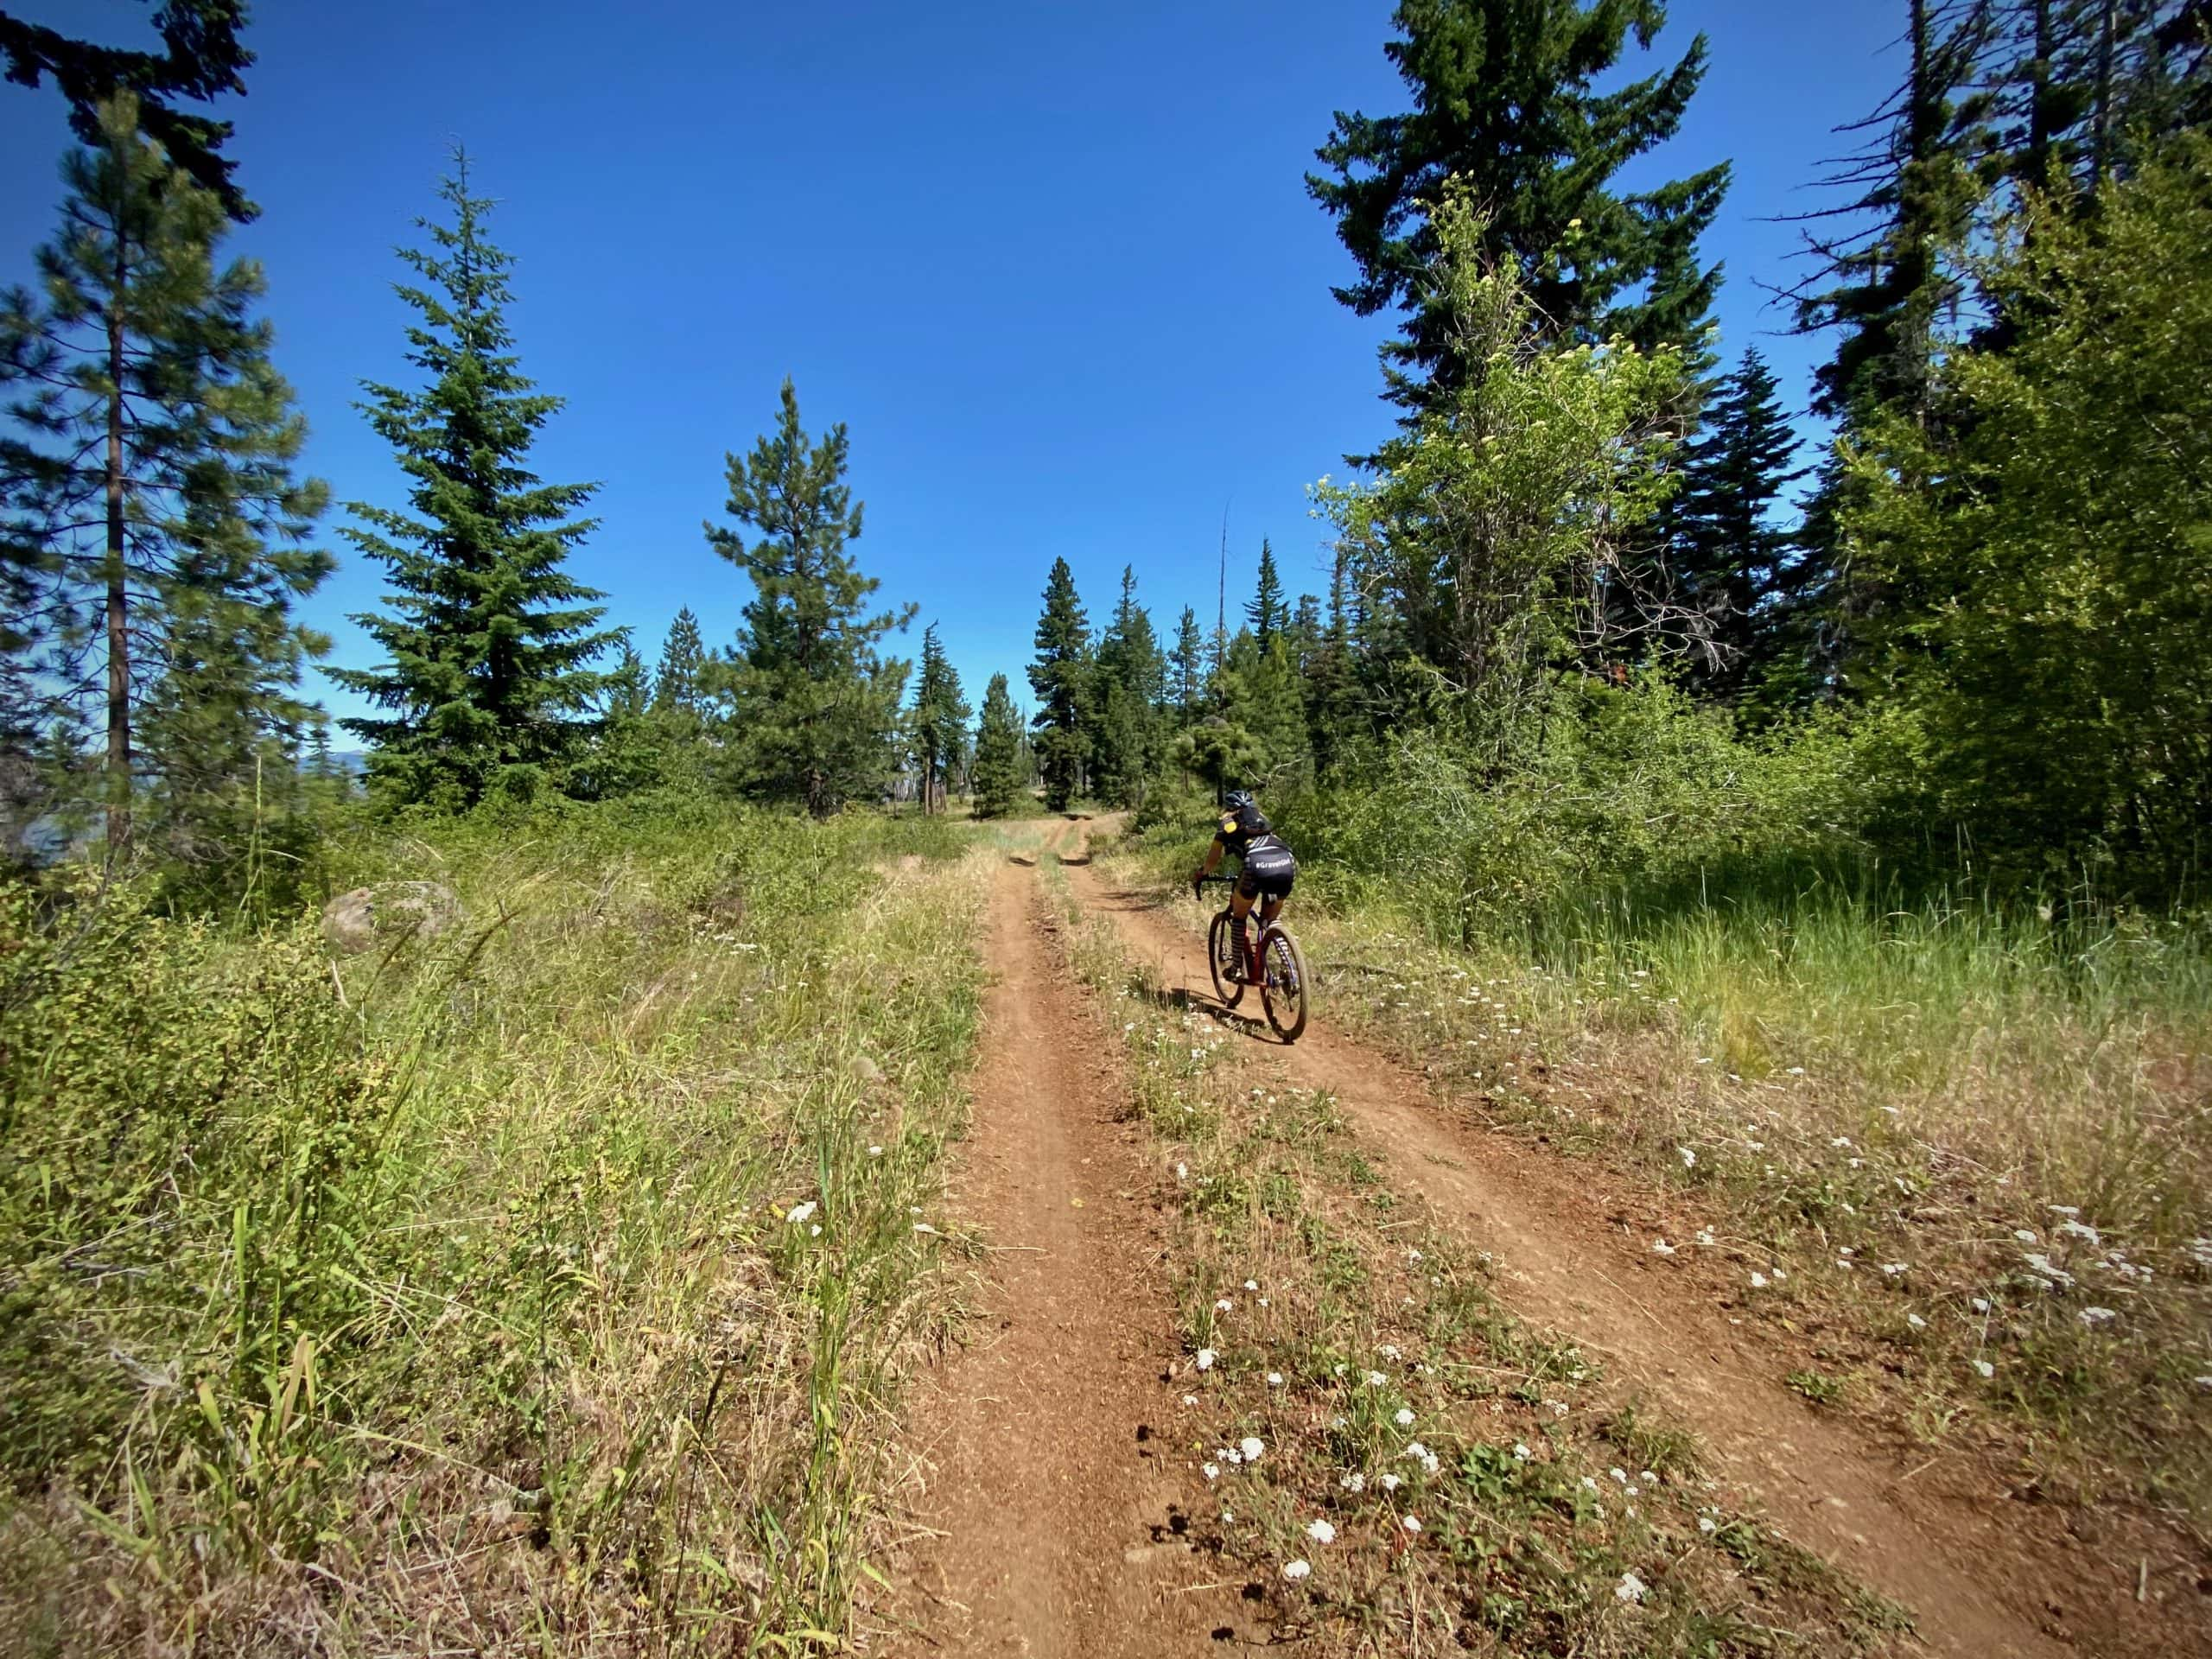 The double-track portion of the Green Ridge trail near Camp Sherman, Oregon.